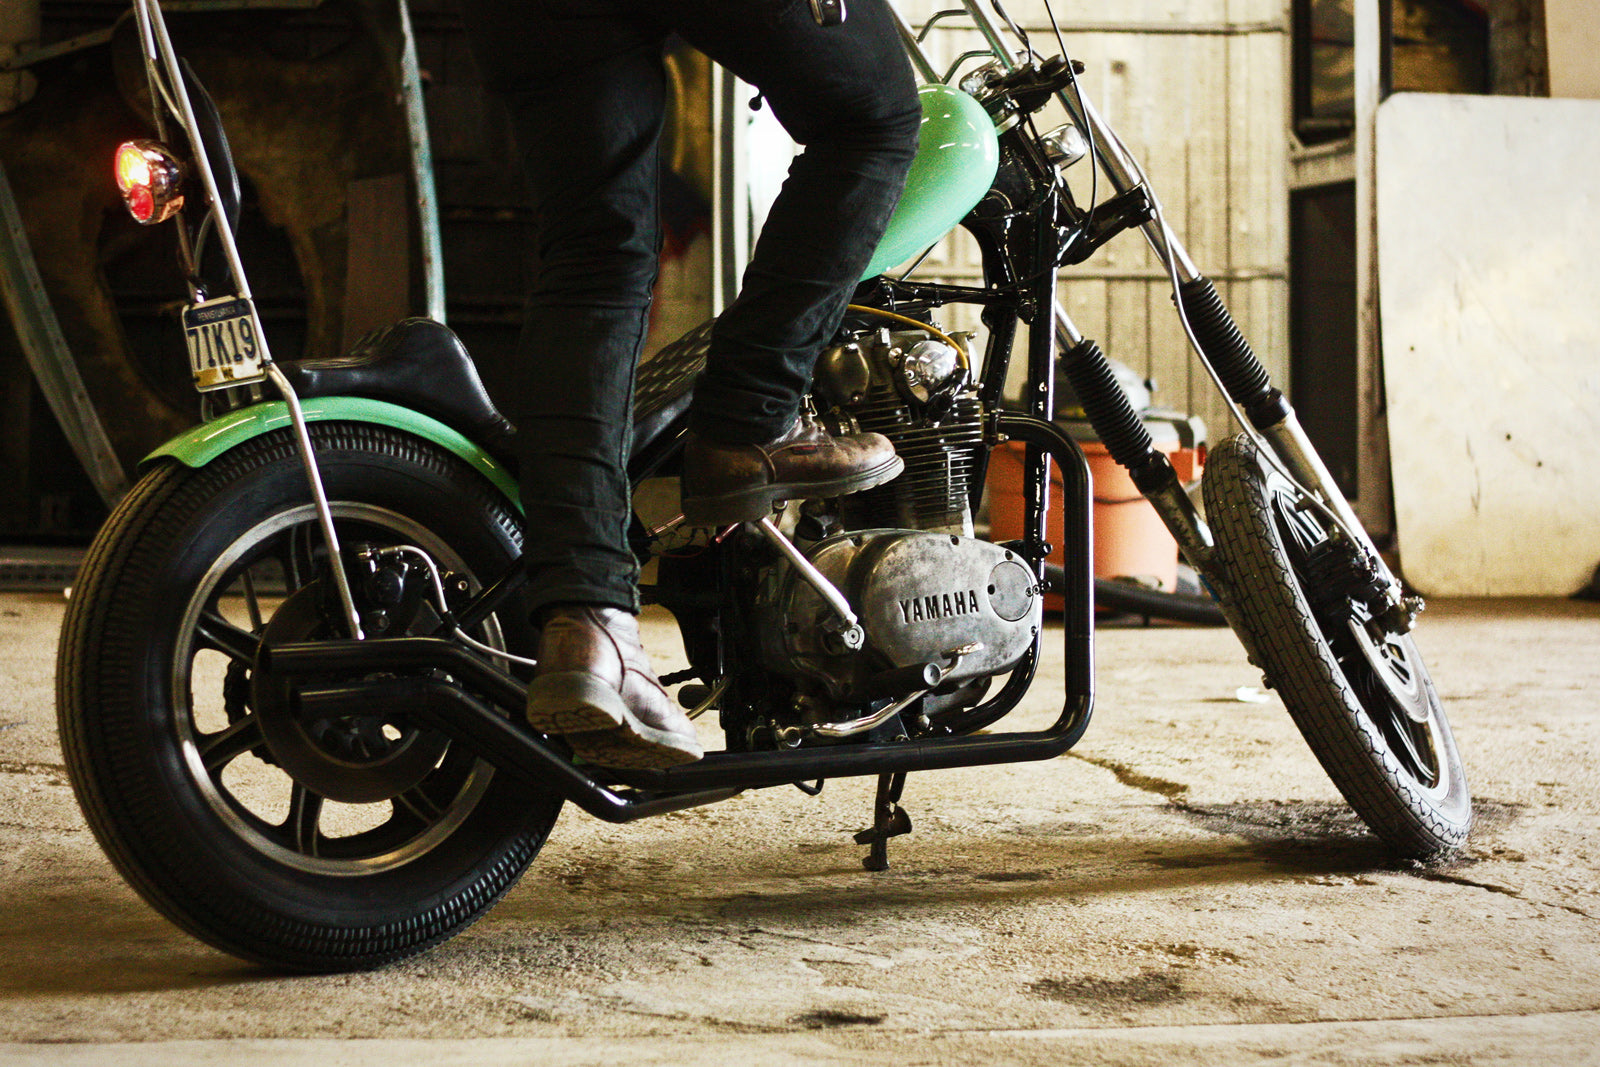 Yamaha XS650 Chopper Vintage Custom Motorcycle Pittsburgh